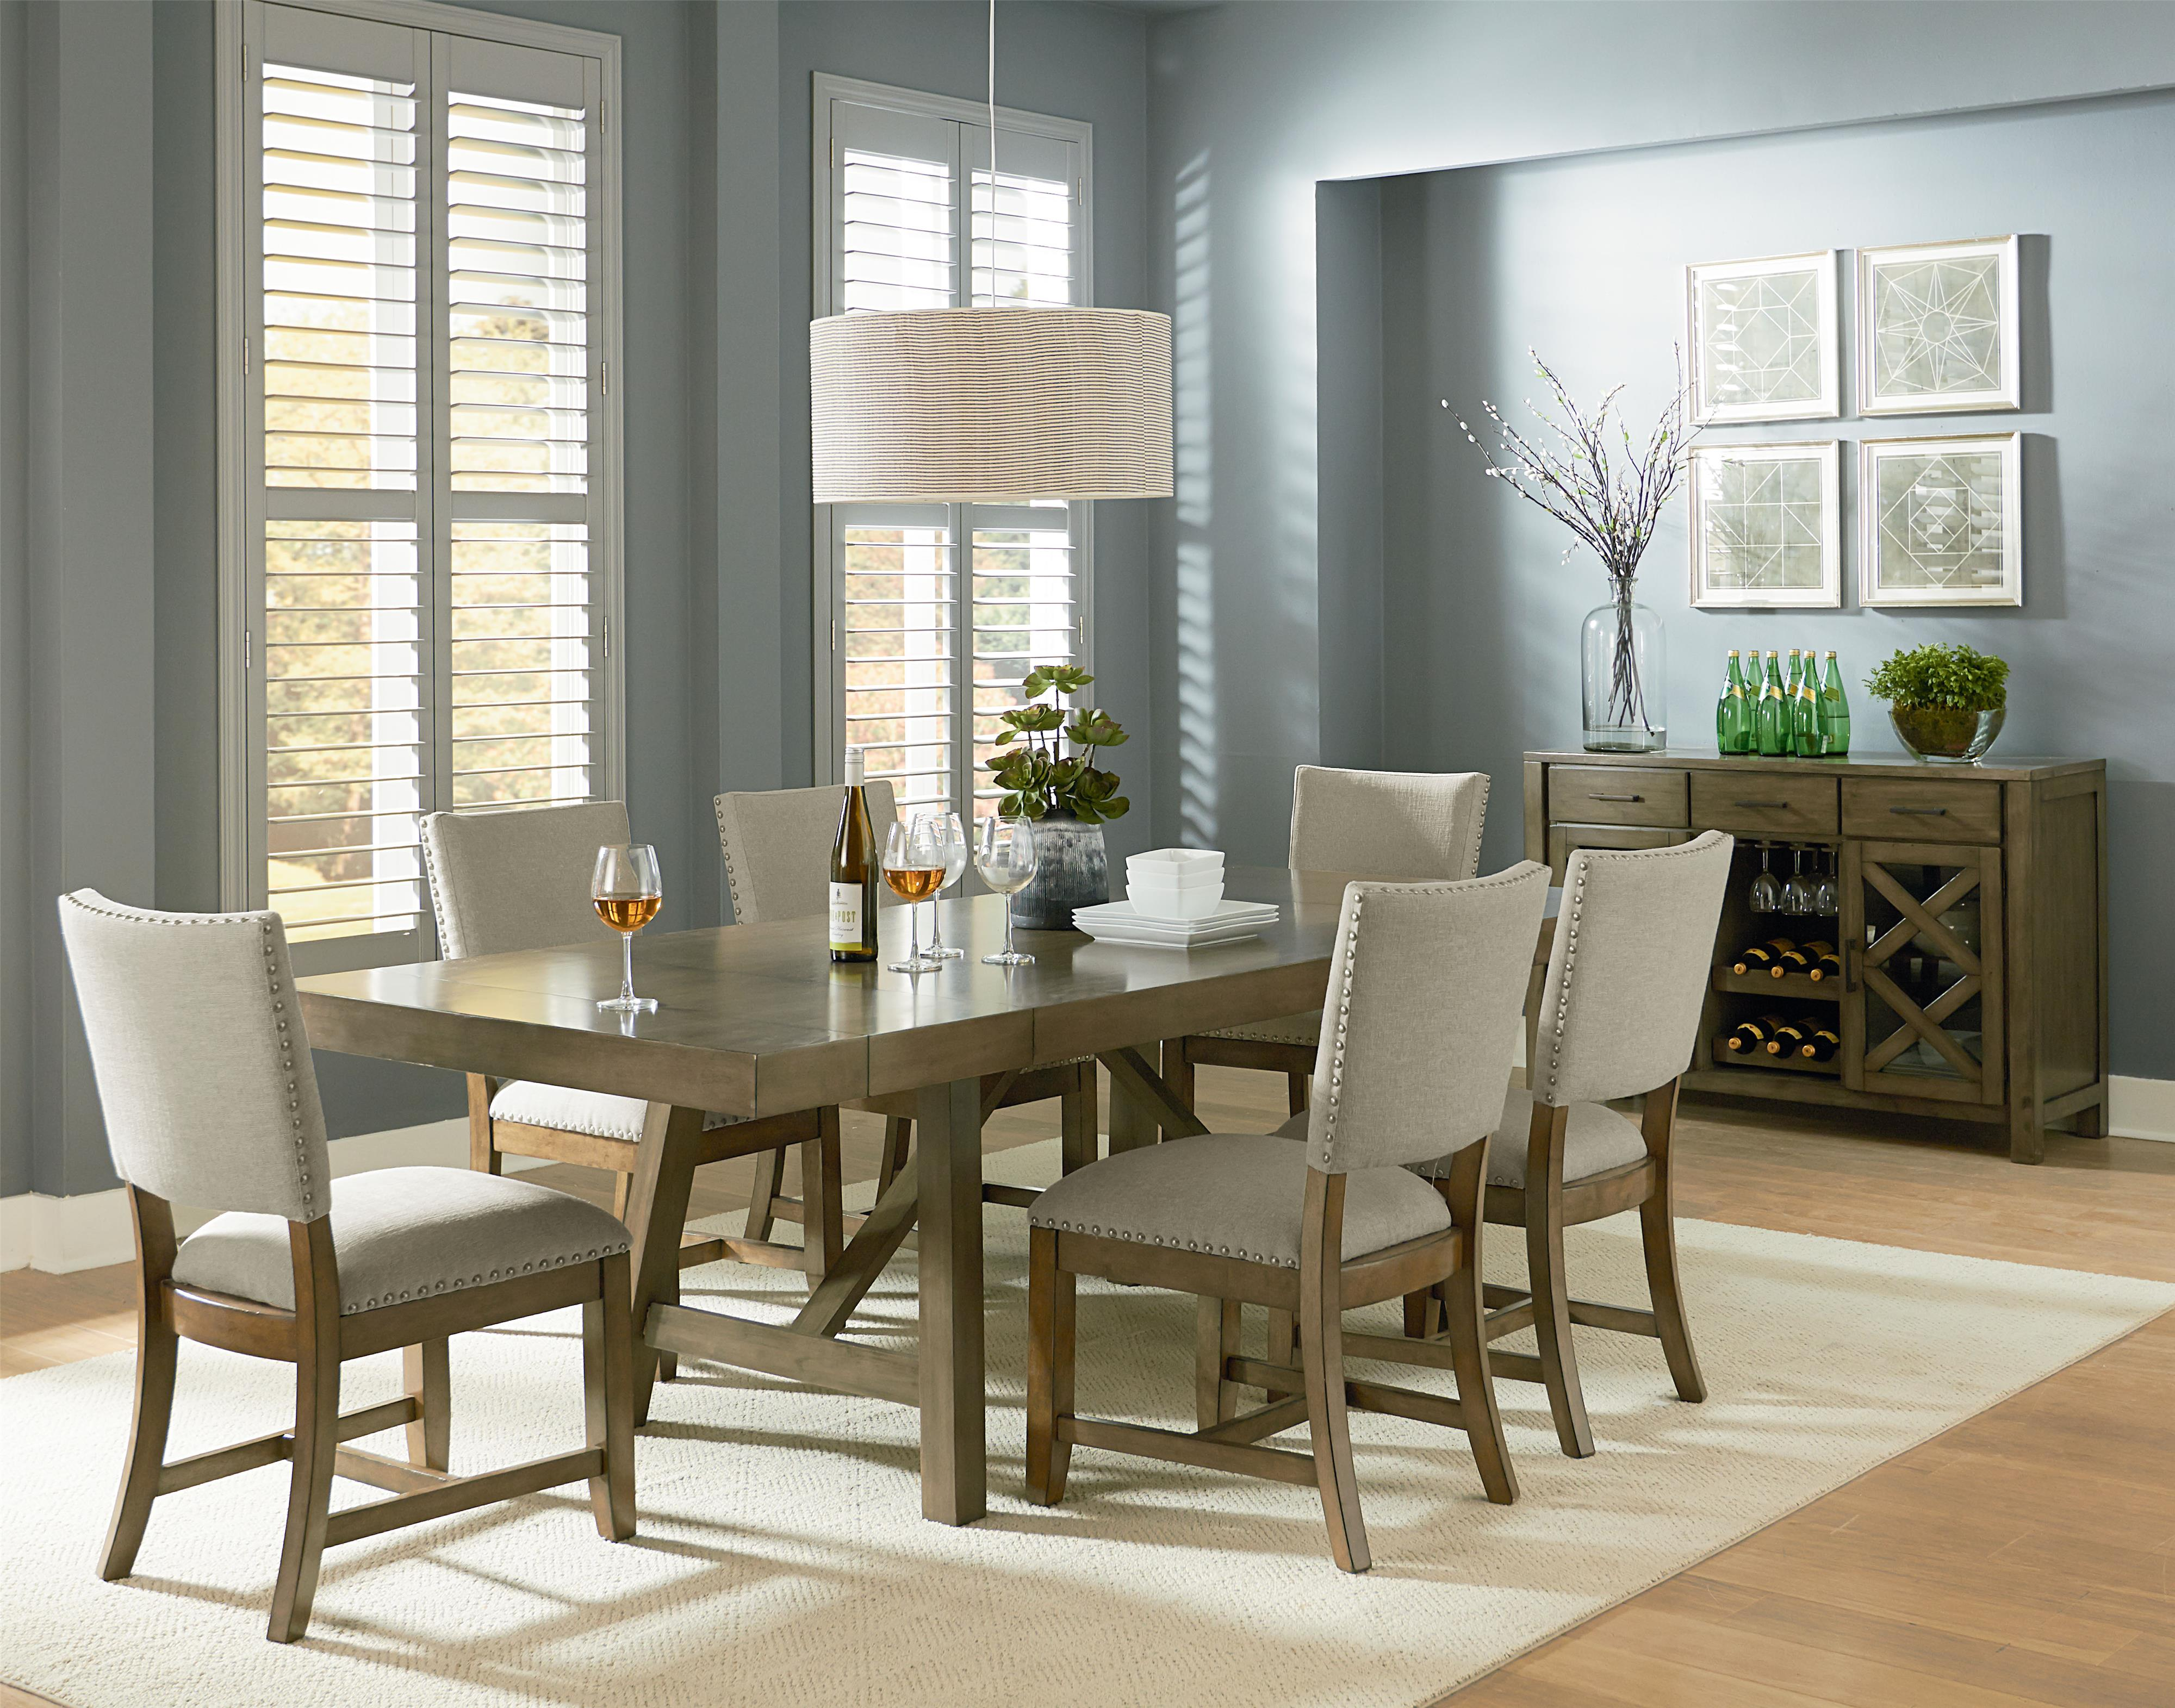 Standard Furniture Omaha Grey Casual Dining Room Group - Item Number: 16680 Dining Room Group 5